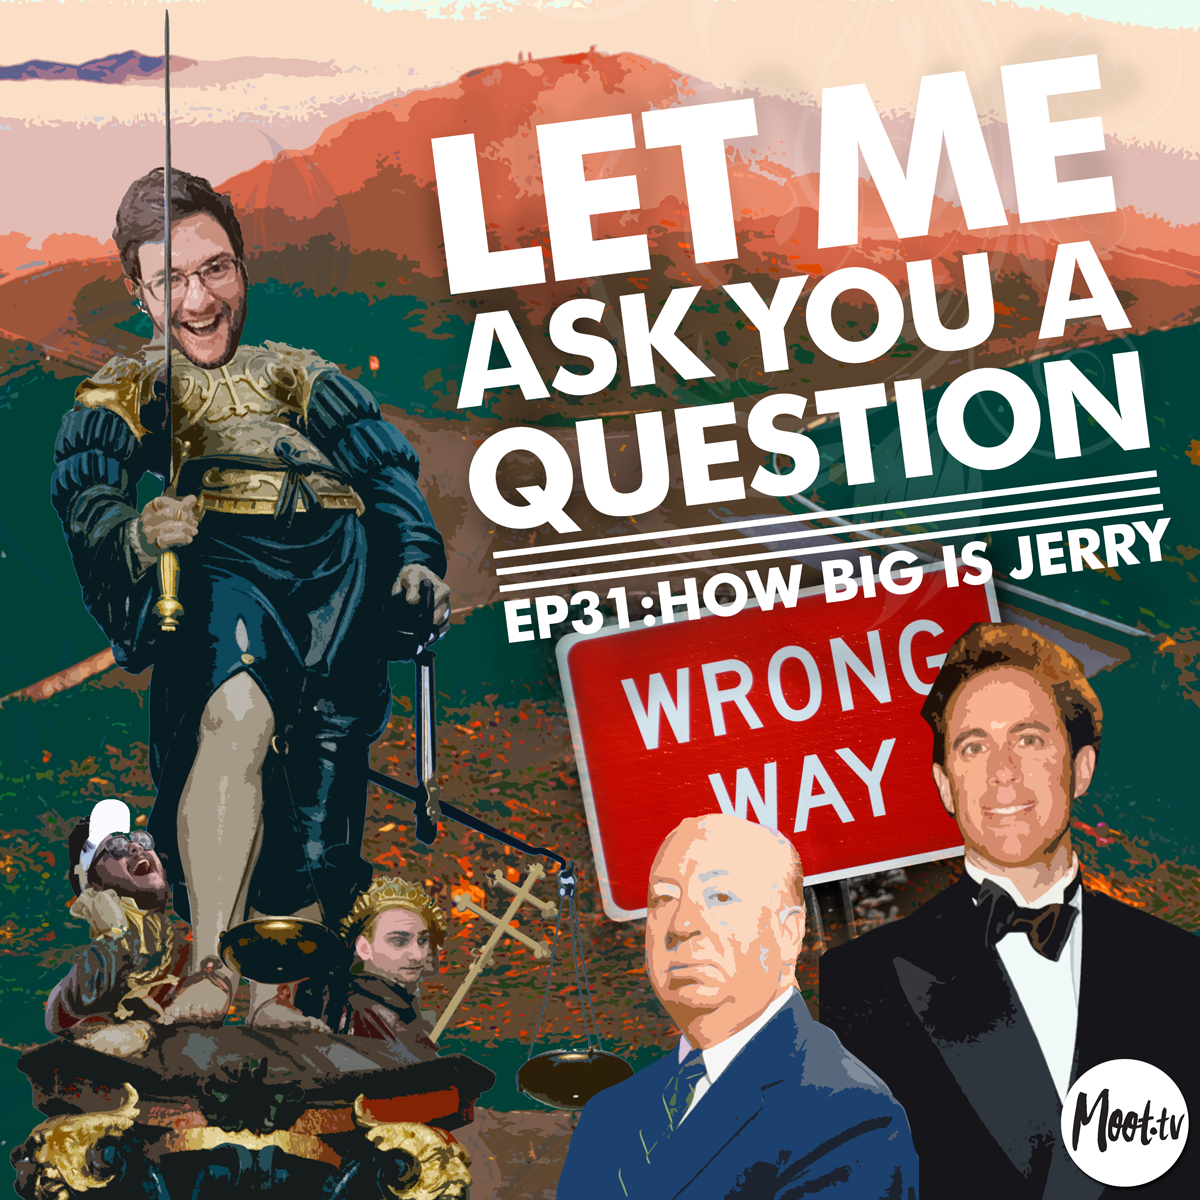 Let Me Ask You A Question Ep31: How Big Is Jerry